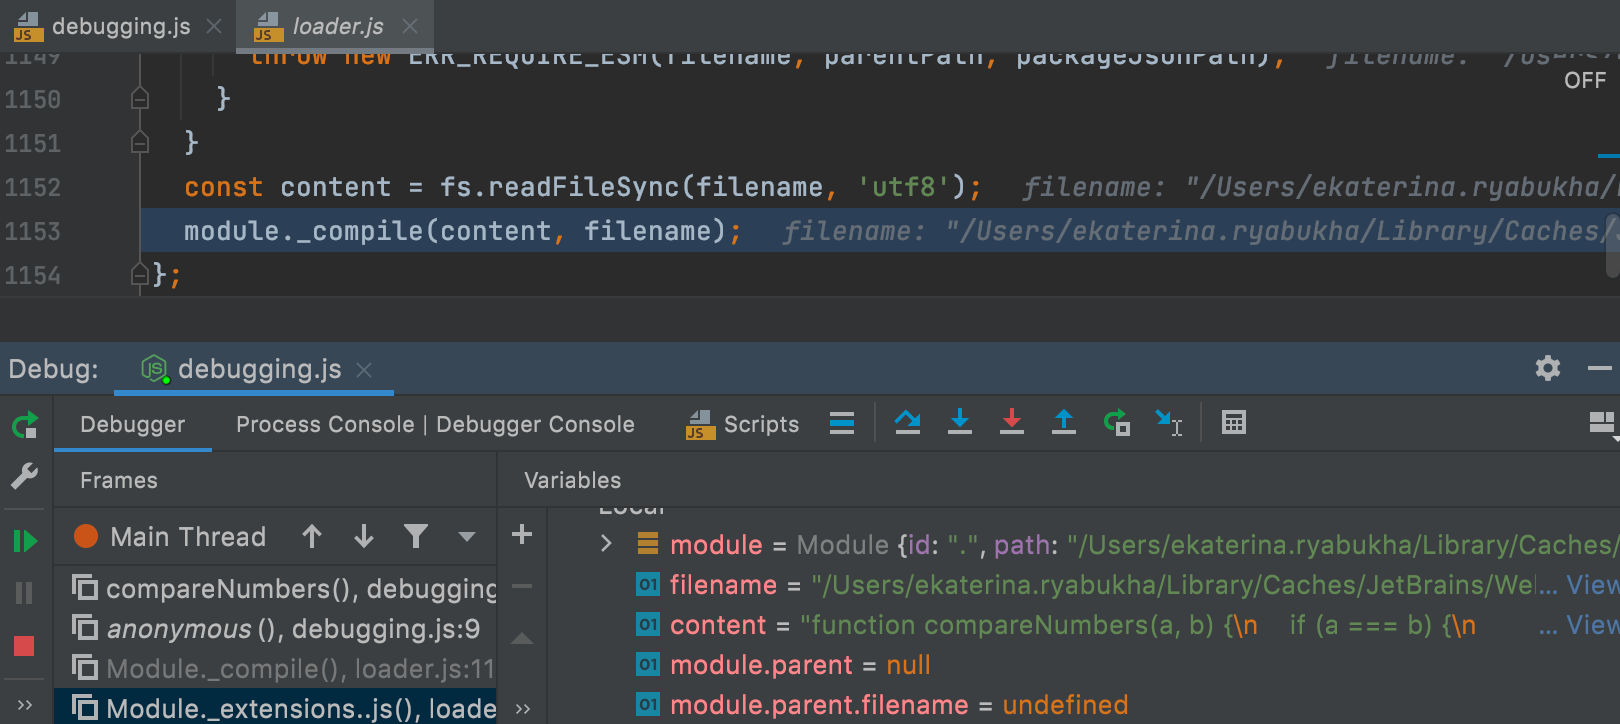 https://www.jetbrains.com/webstorm/whatsnew/img/2021.2/preview-tab-in-debugger-810@2x.png